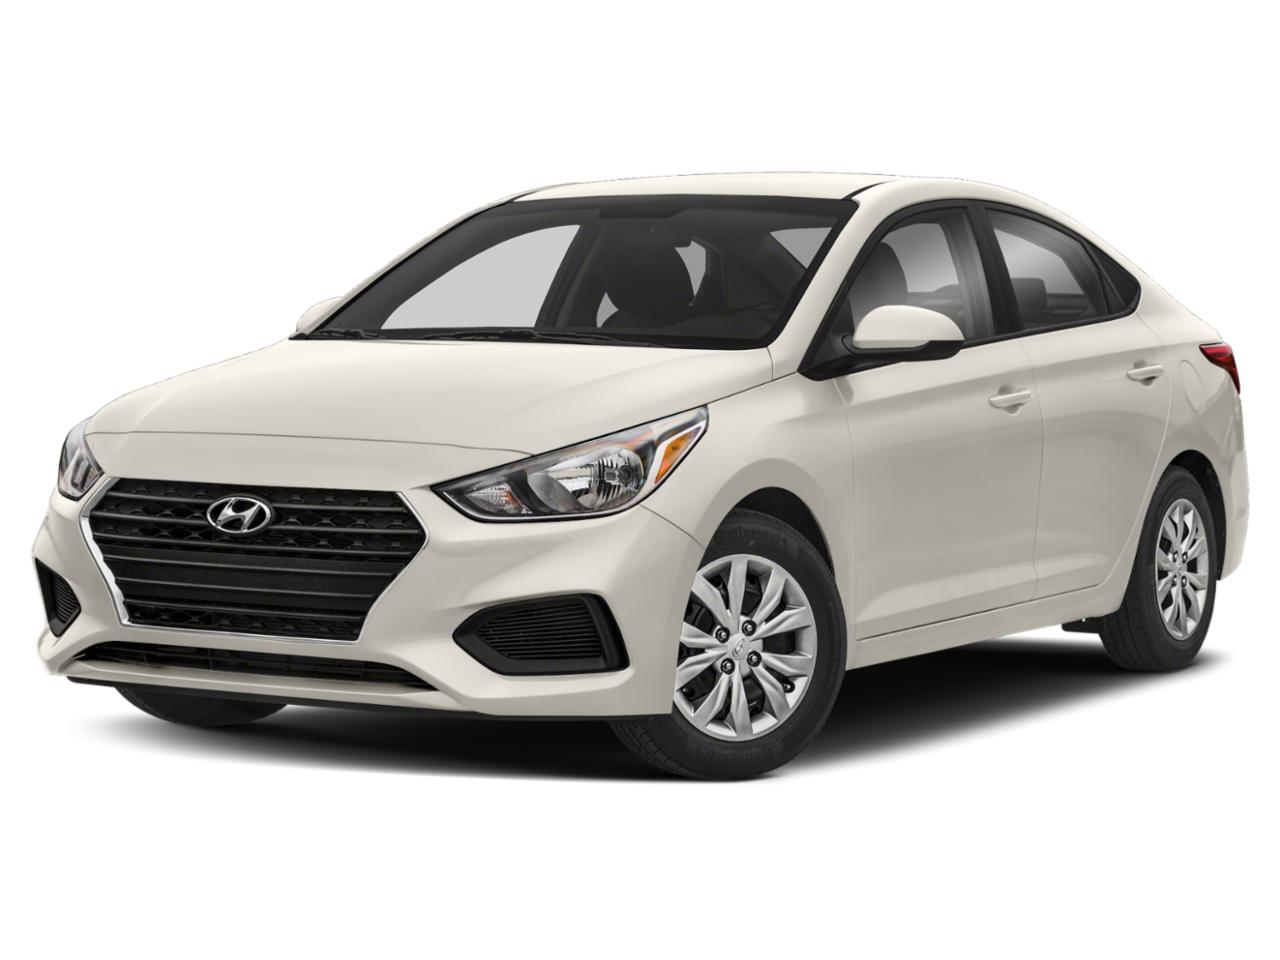 2019 Hyundai Accent Vehicle Photo in Denver, CO 80123